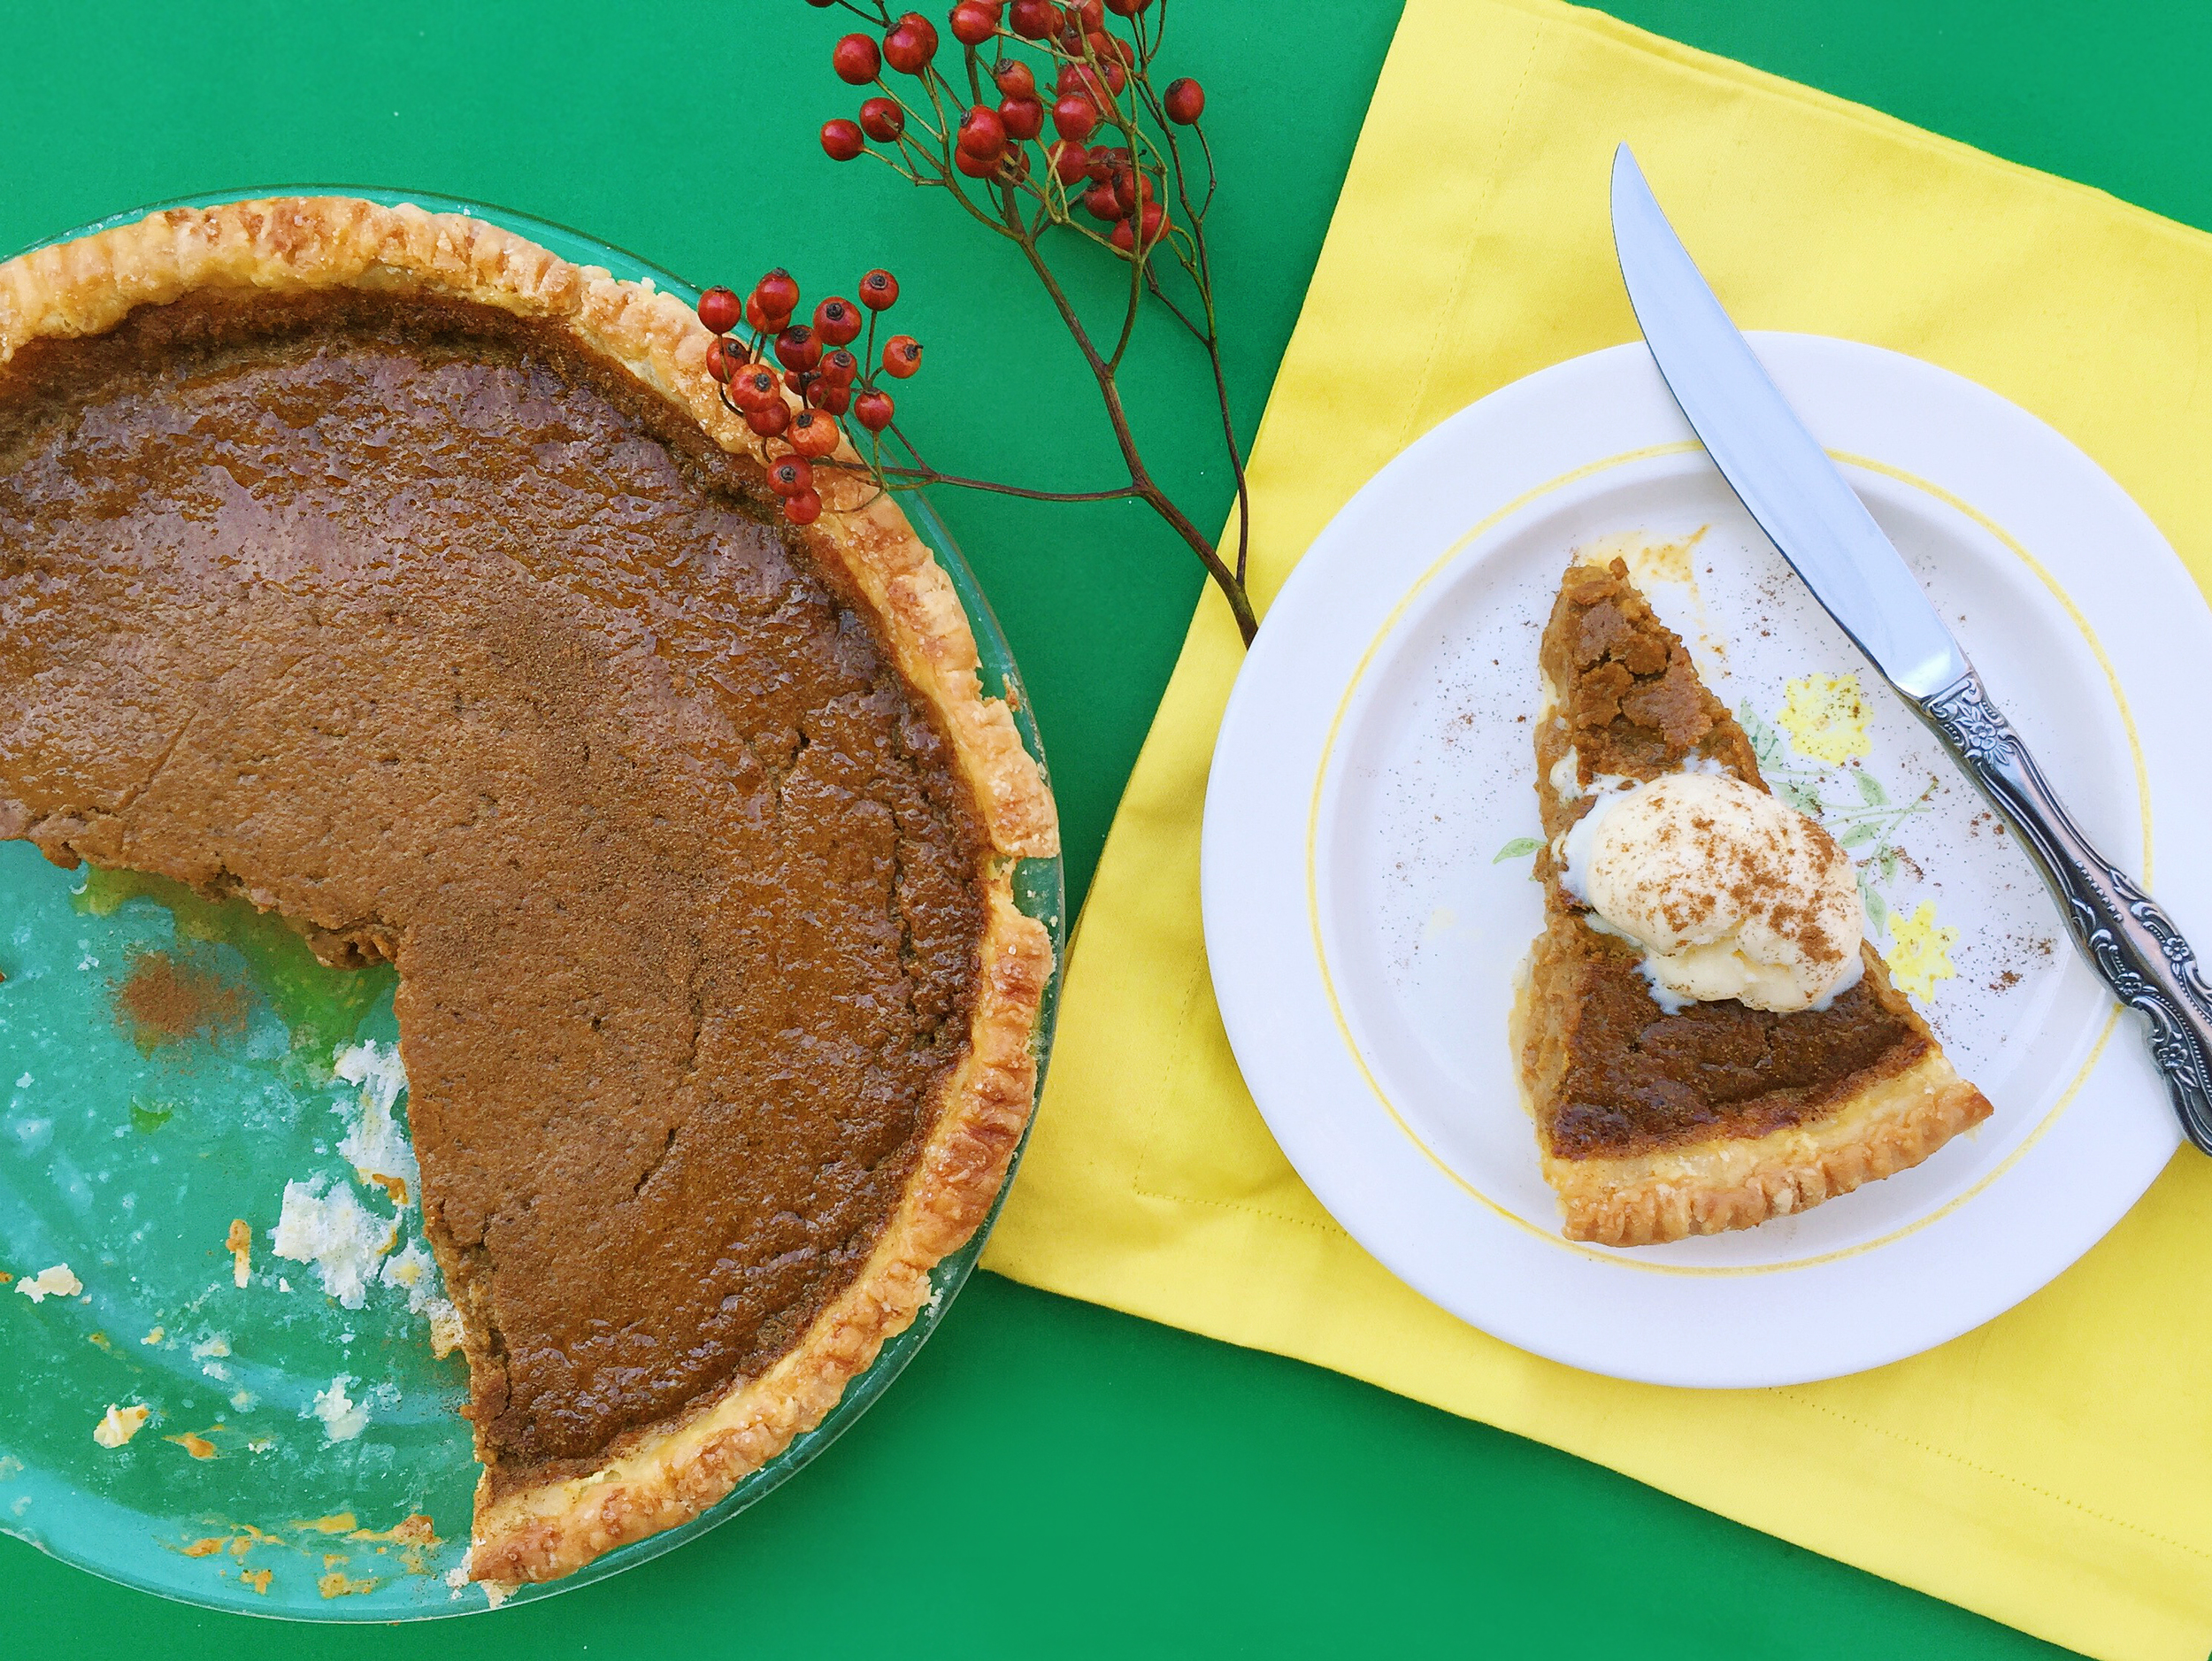 amy_chen_design_brown_butter_pumpkin_pie_1.jpg